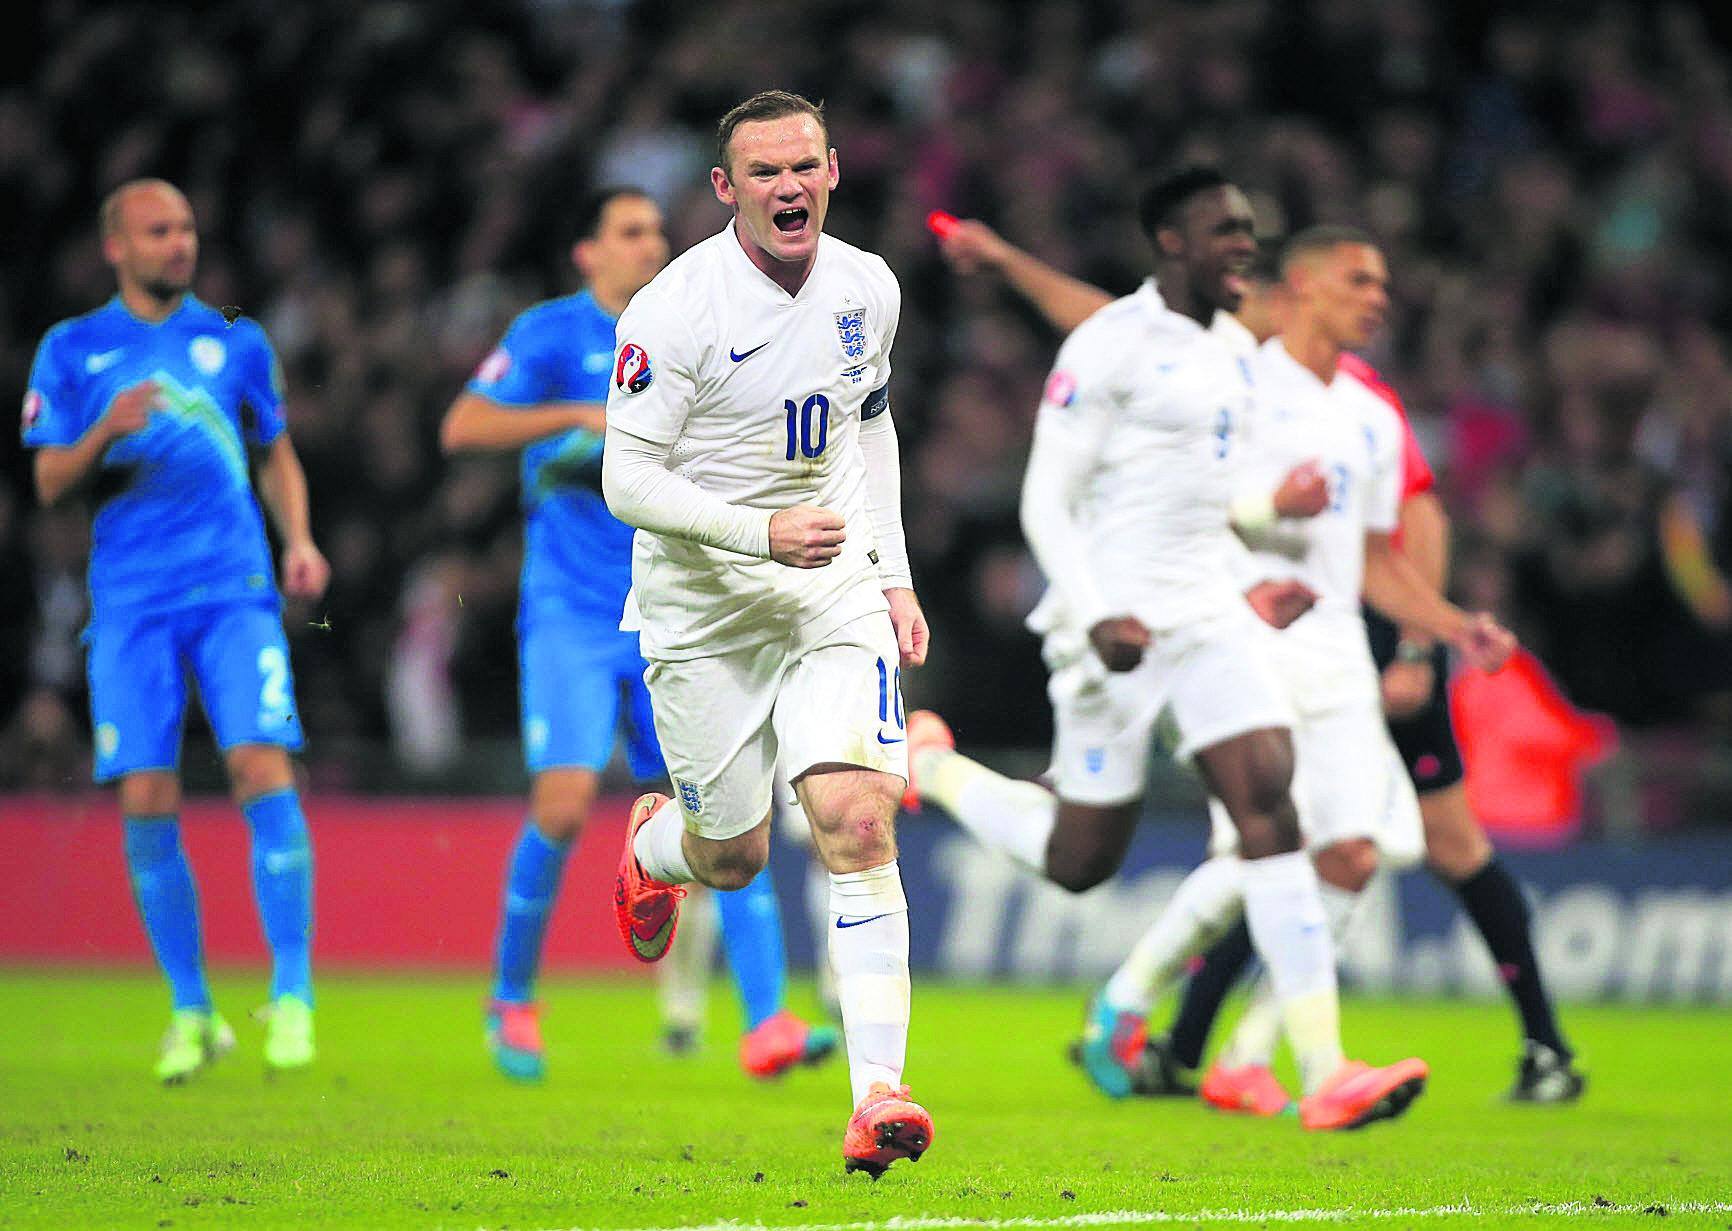 Wayne Rooney celebrates scoring against Slovenia on Saturday, his 44th goal for England